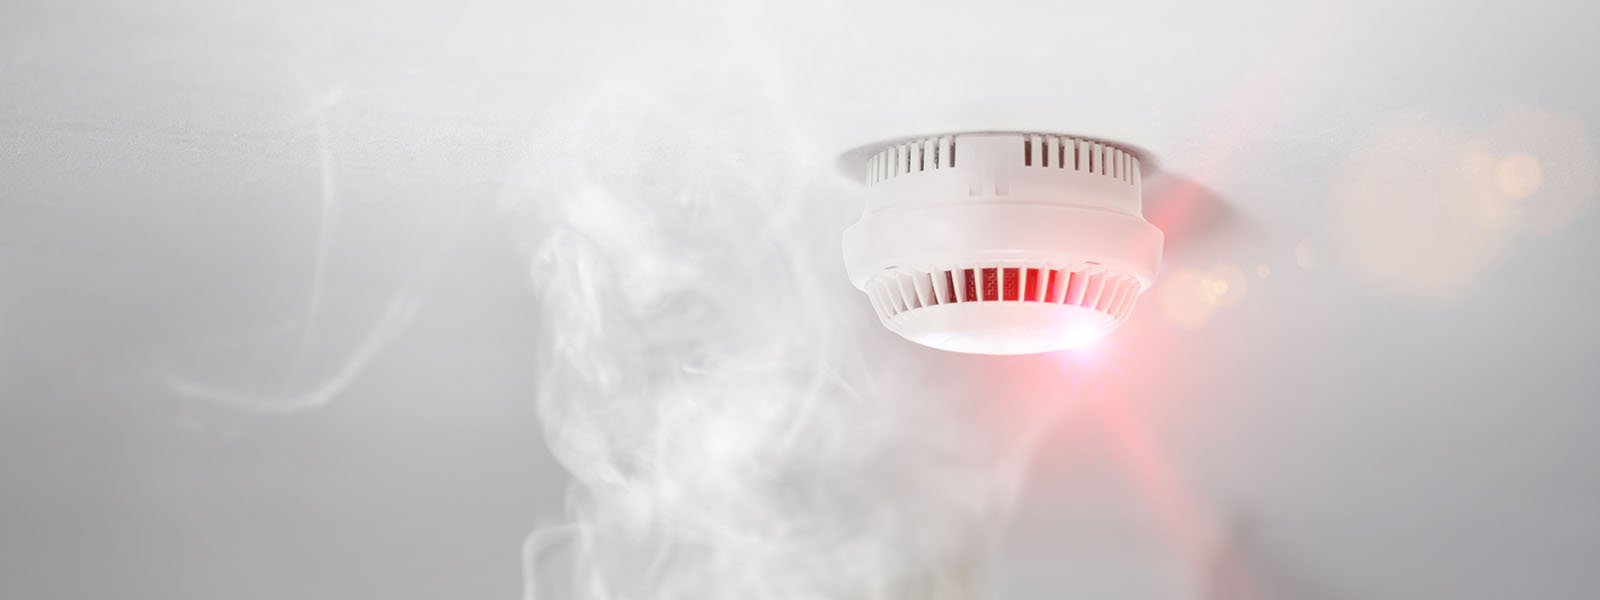 All About Smoke Fire Alarm Installation